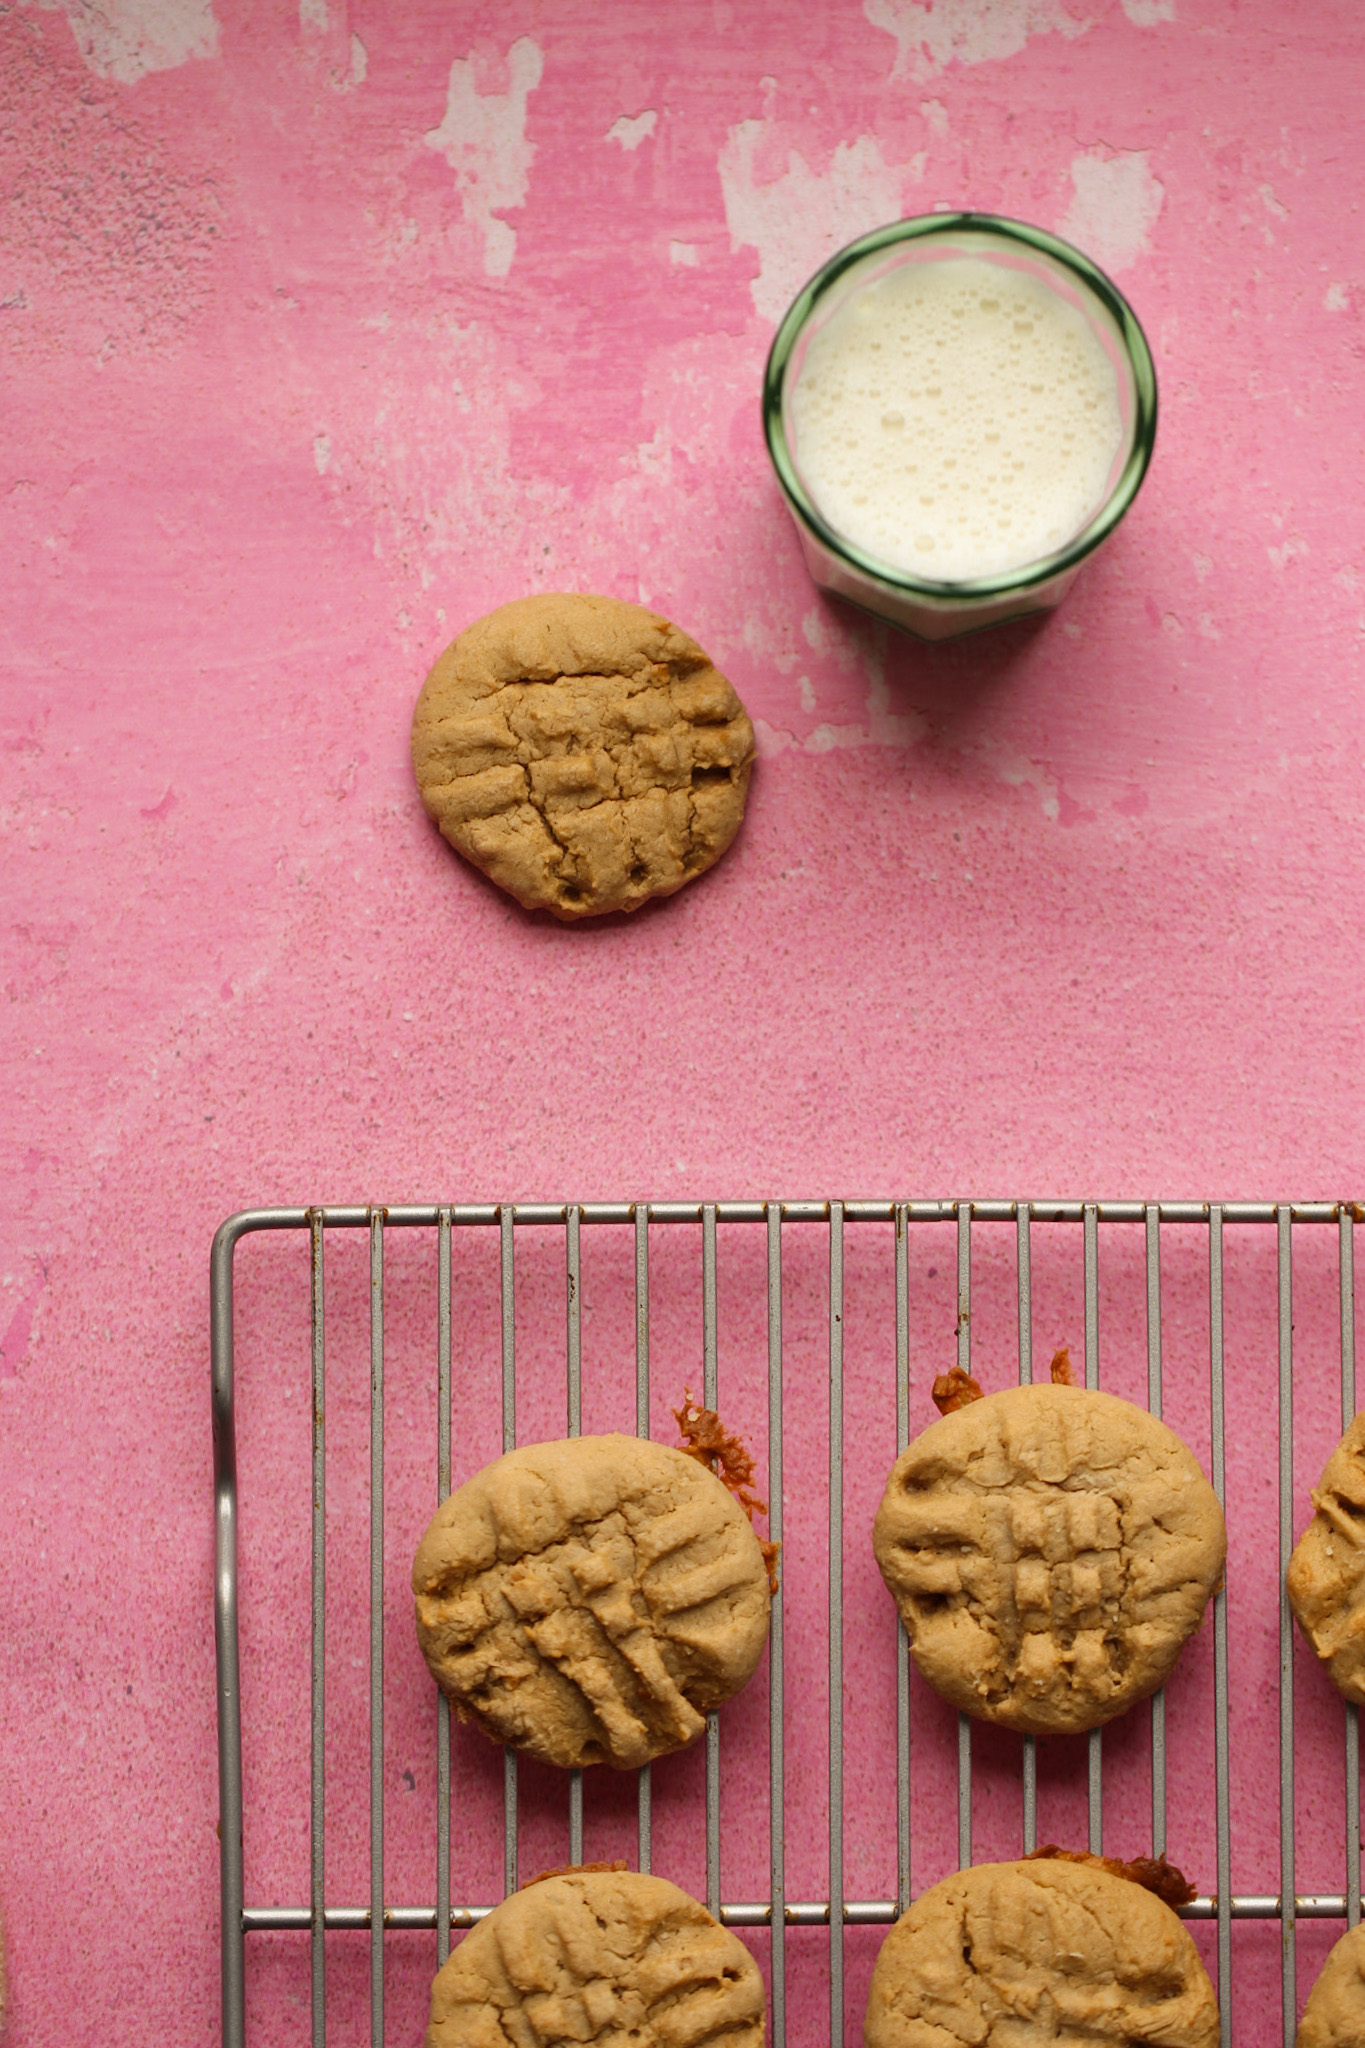 peanut butter cookies with milk and pink background